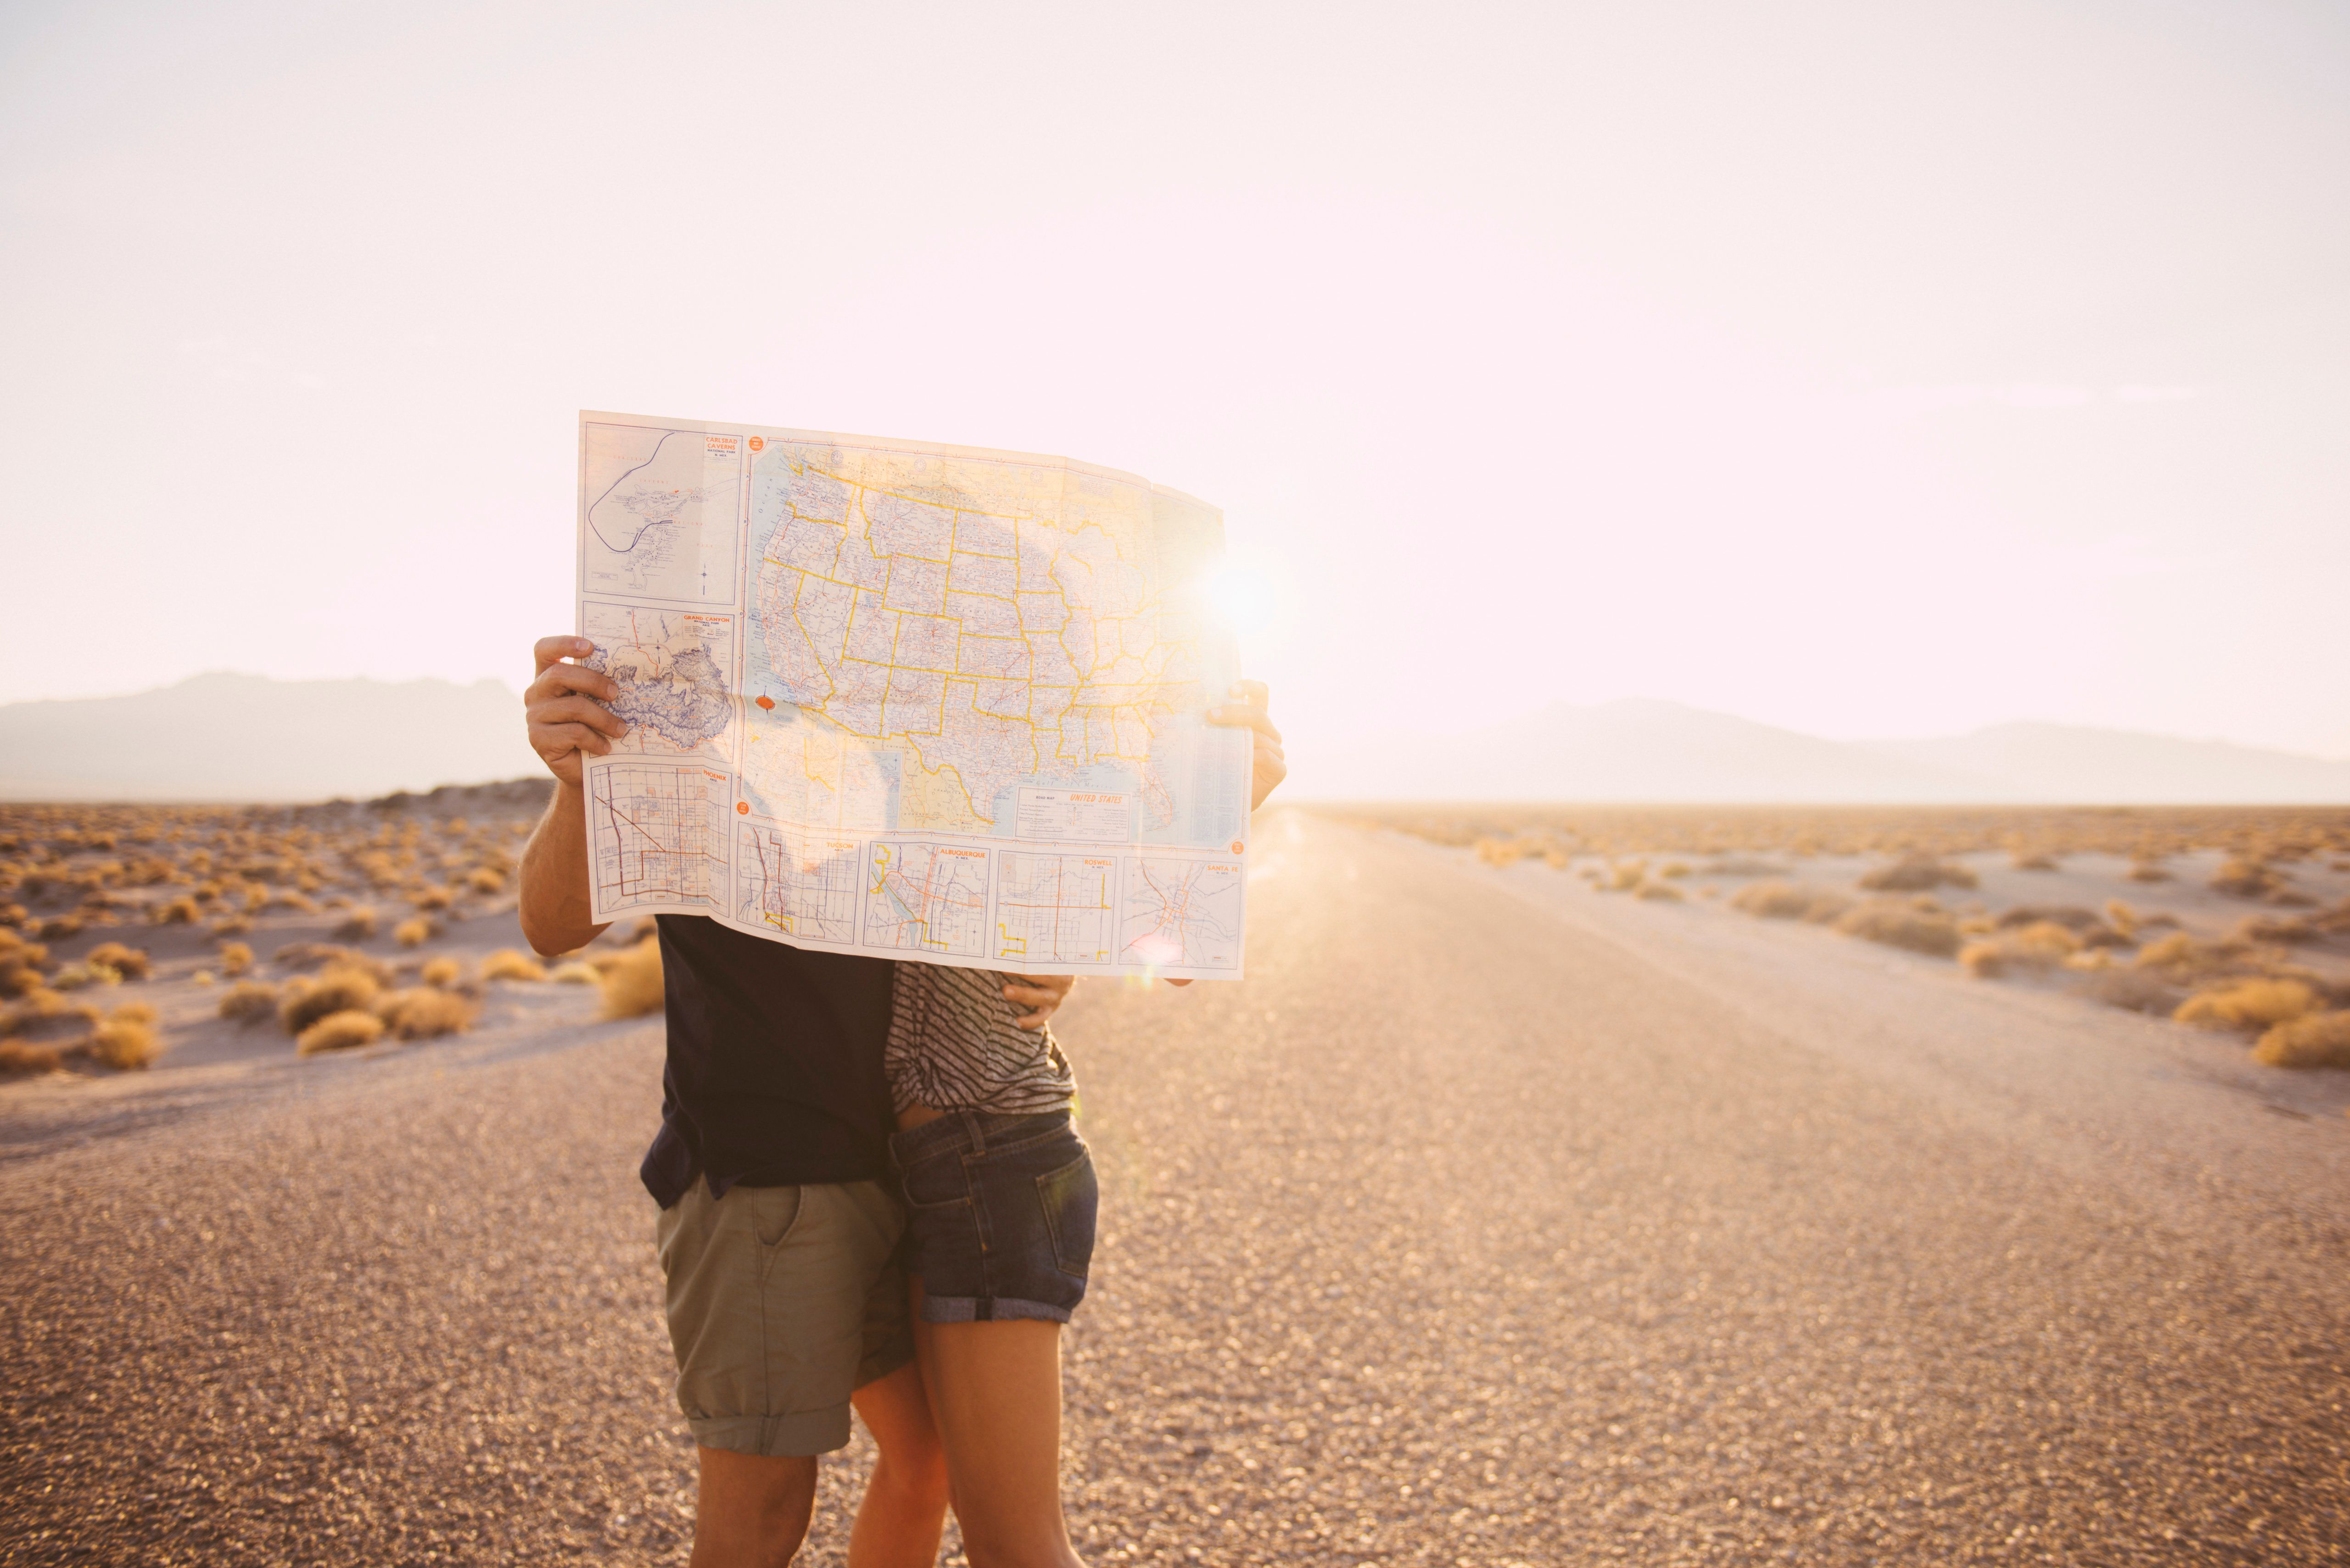 Taking on a big trip together can help you learn how your partner reacts to challenges and new environments.